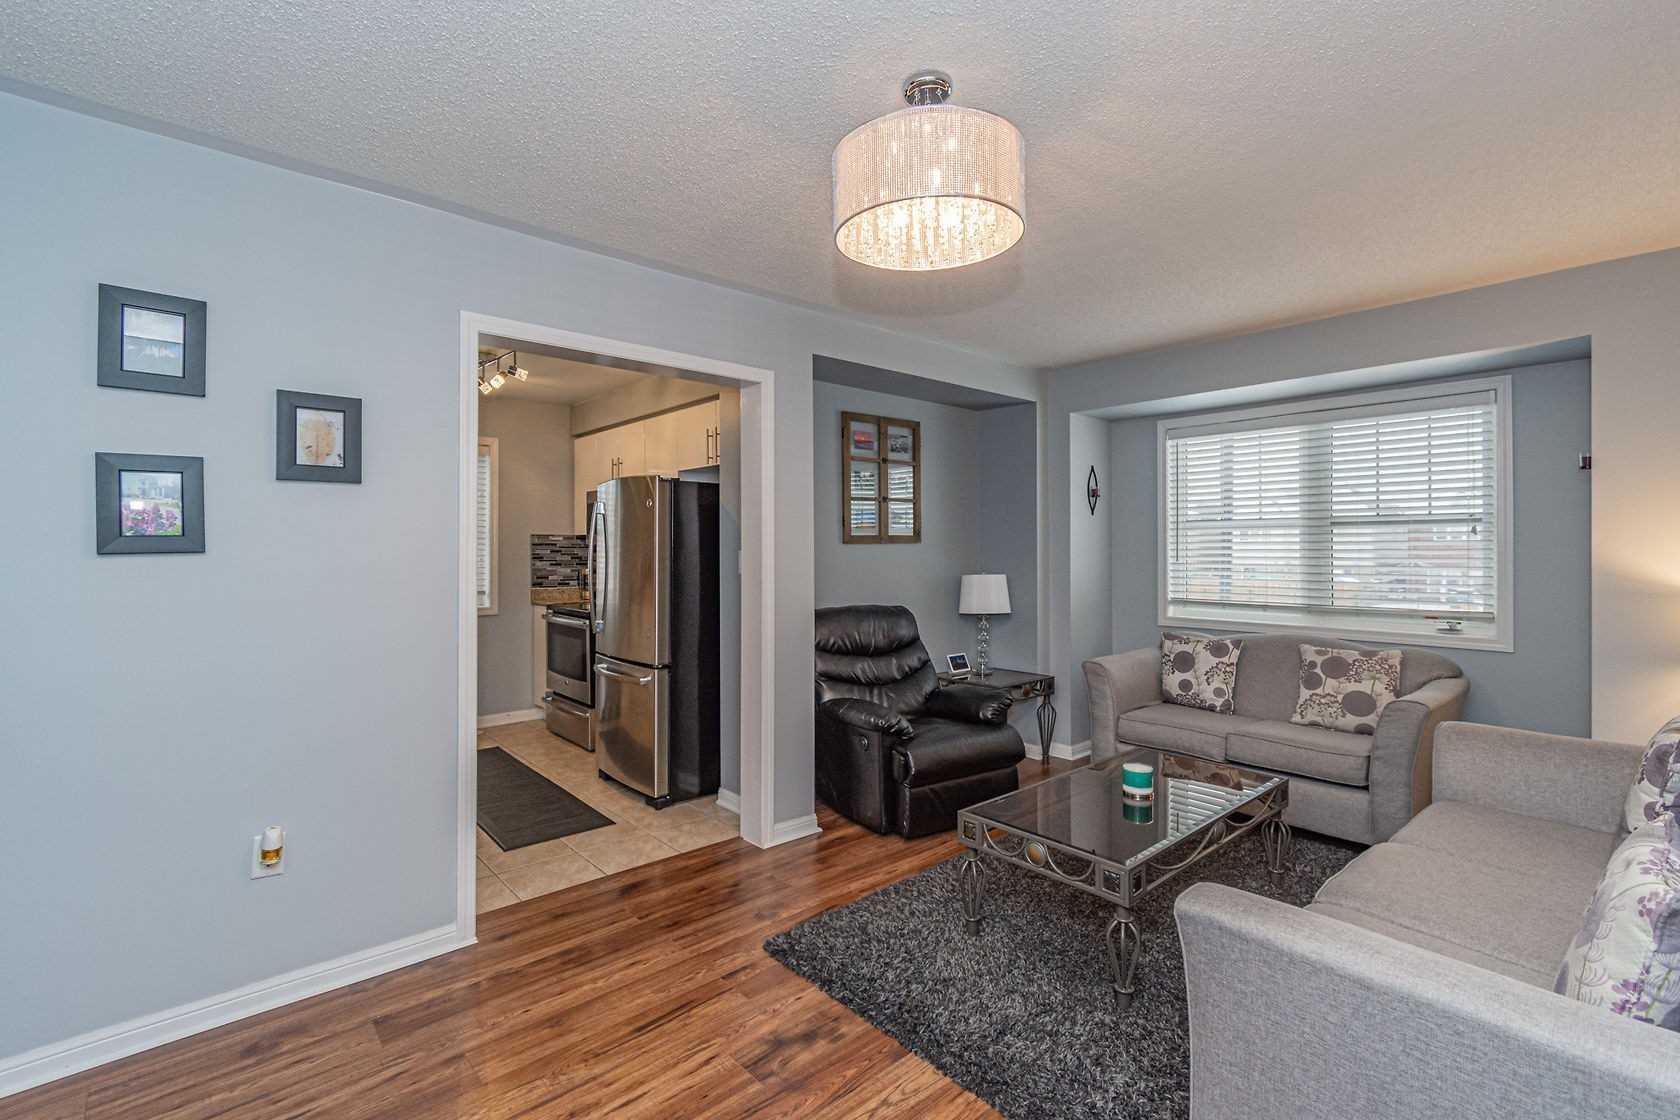 Image 8 of 20 showing inside of 3 Bedroom Att/Row/Twnhouse 3-Storey house for sale at 912 Ambroise Cres, Milton L9T0M2